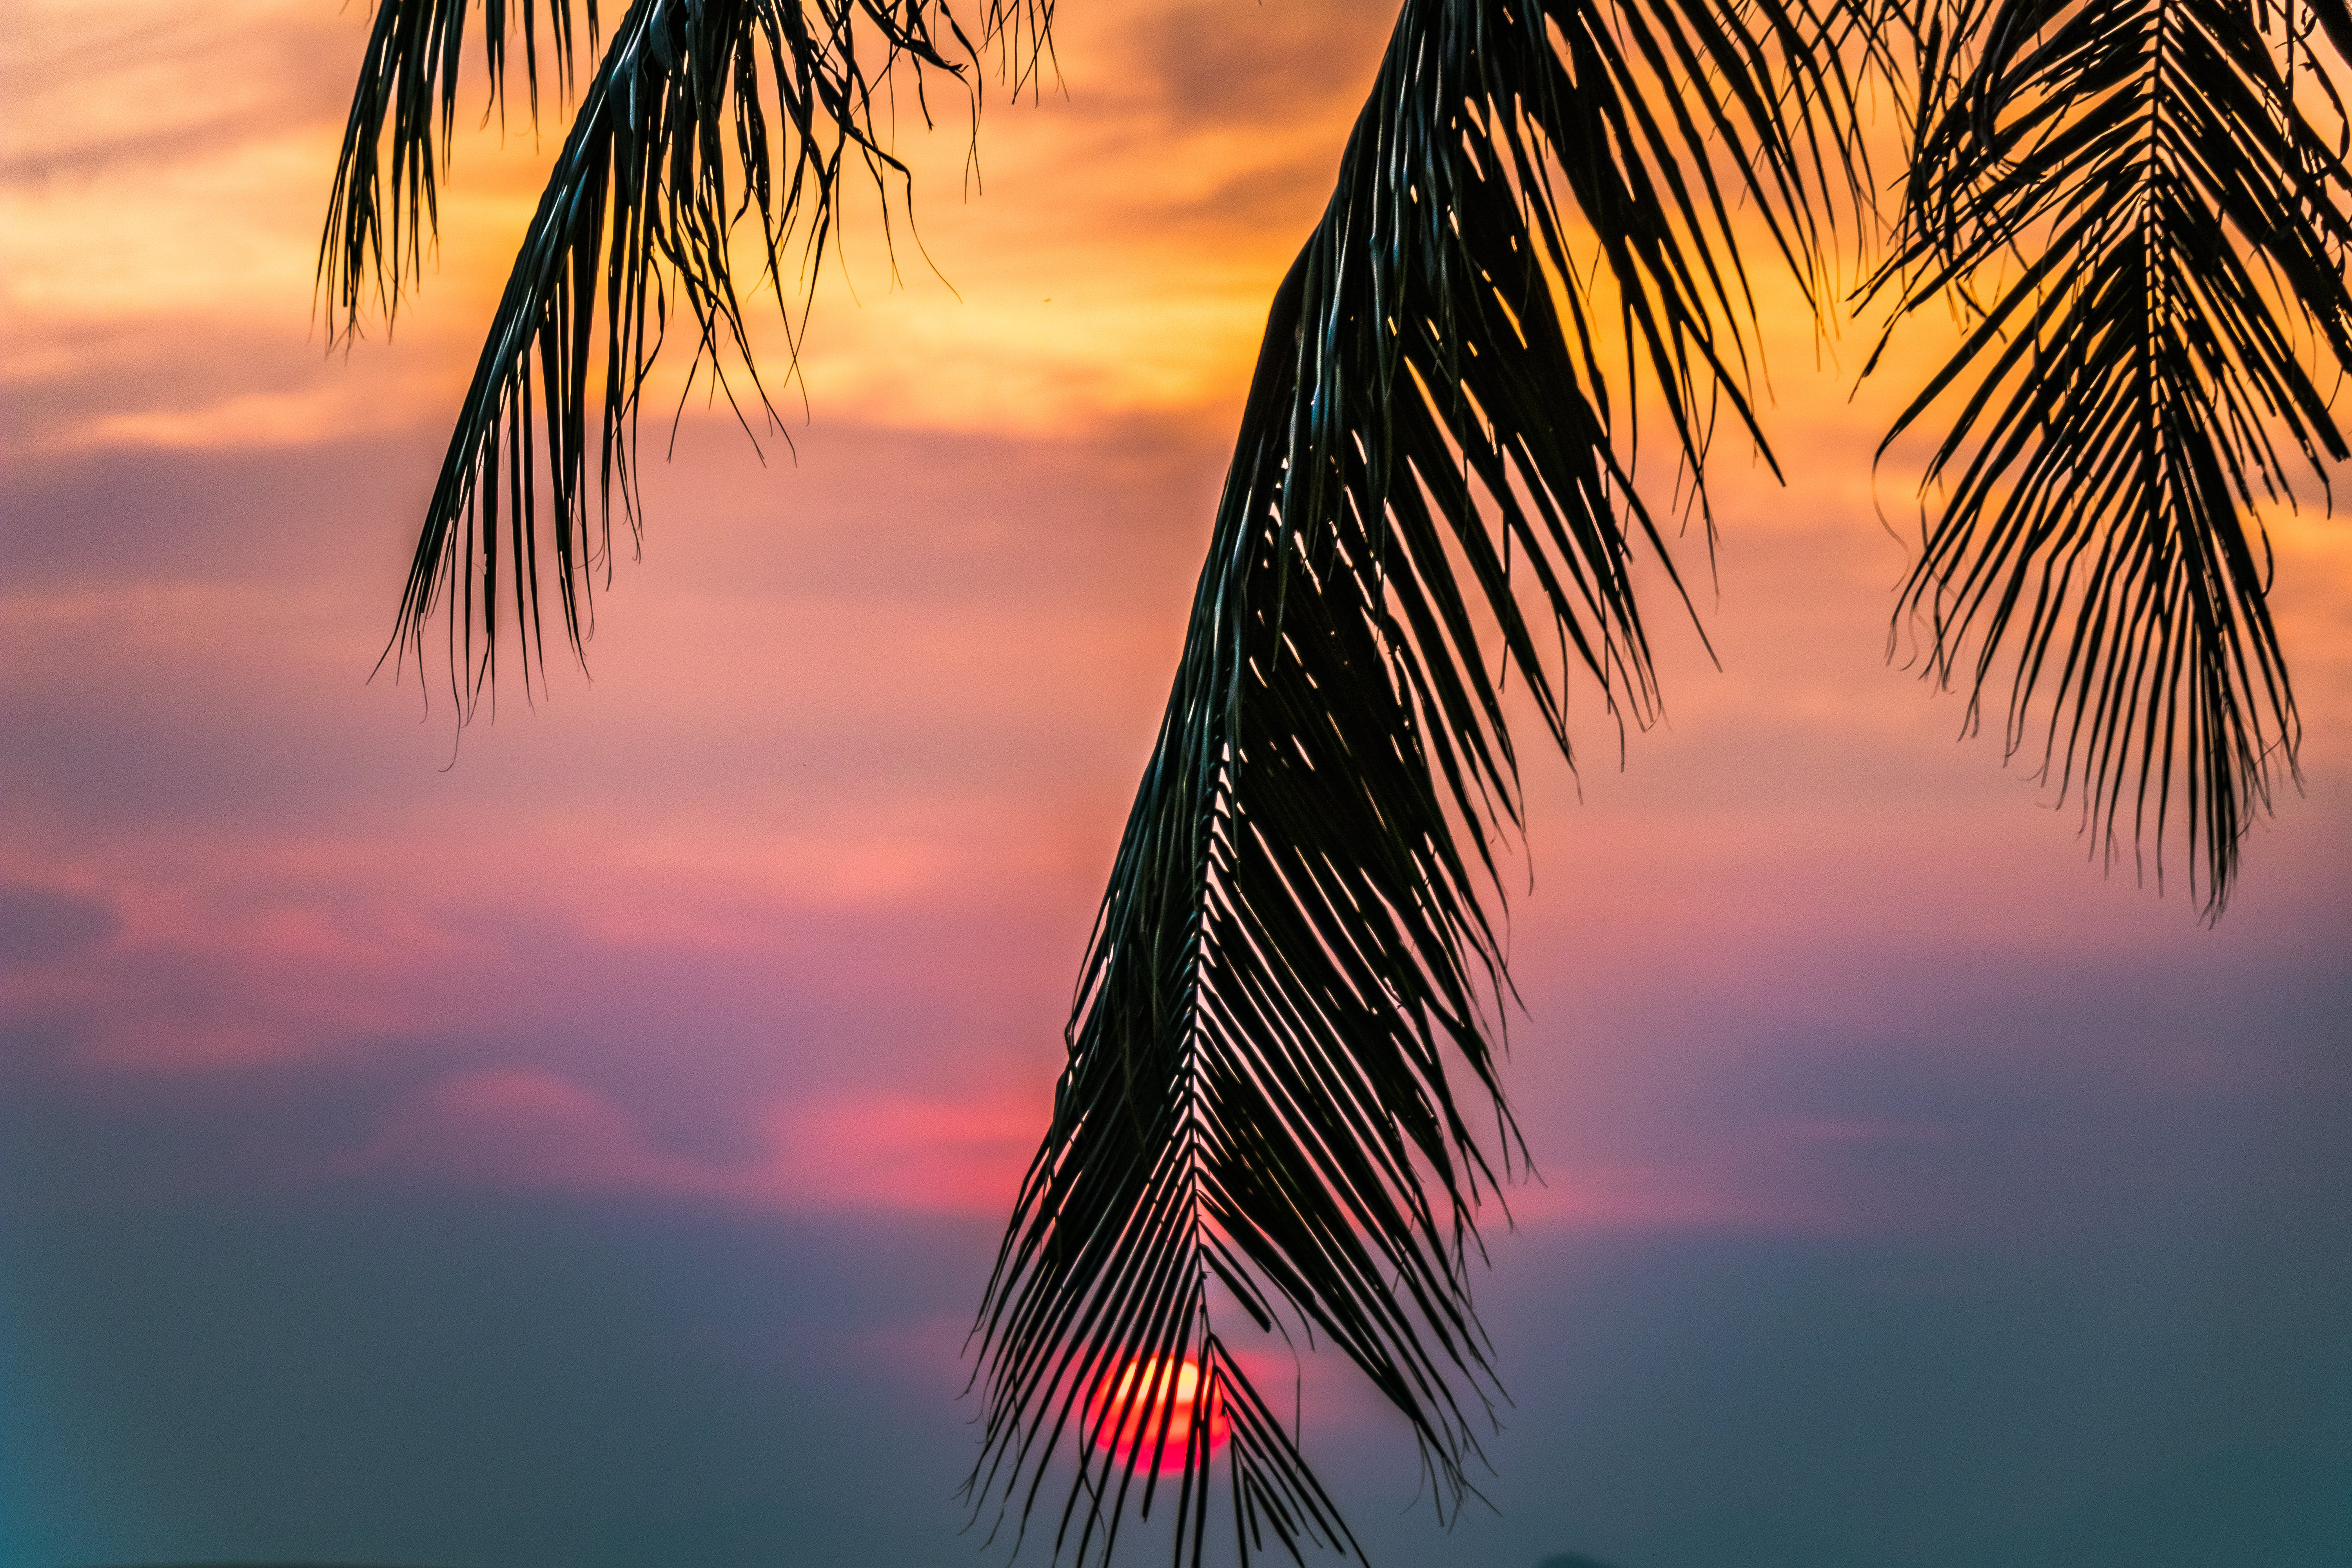 Sun Covered With Coconut Tree during Sunrise